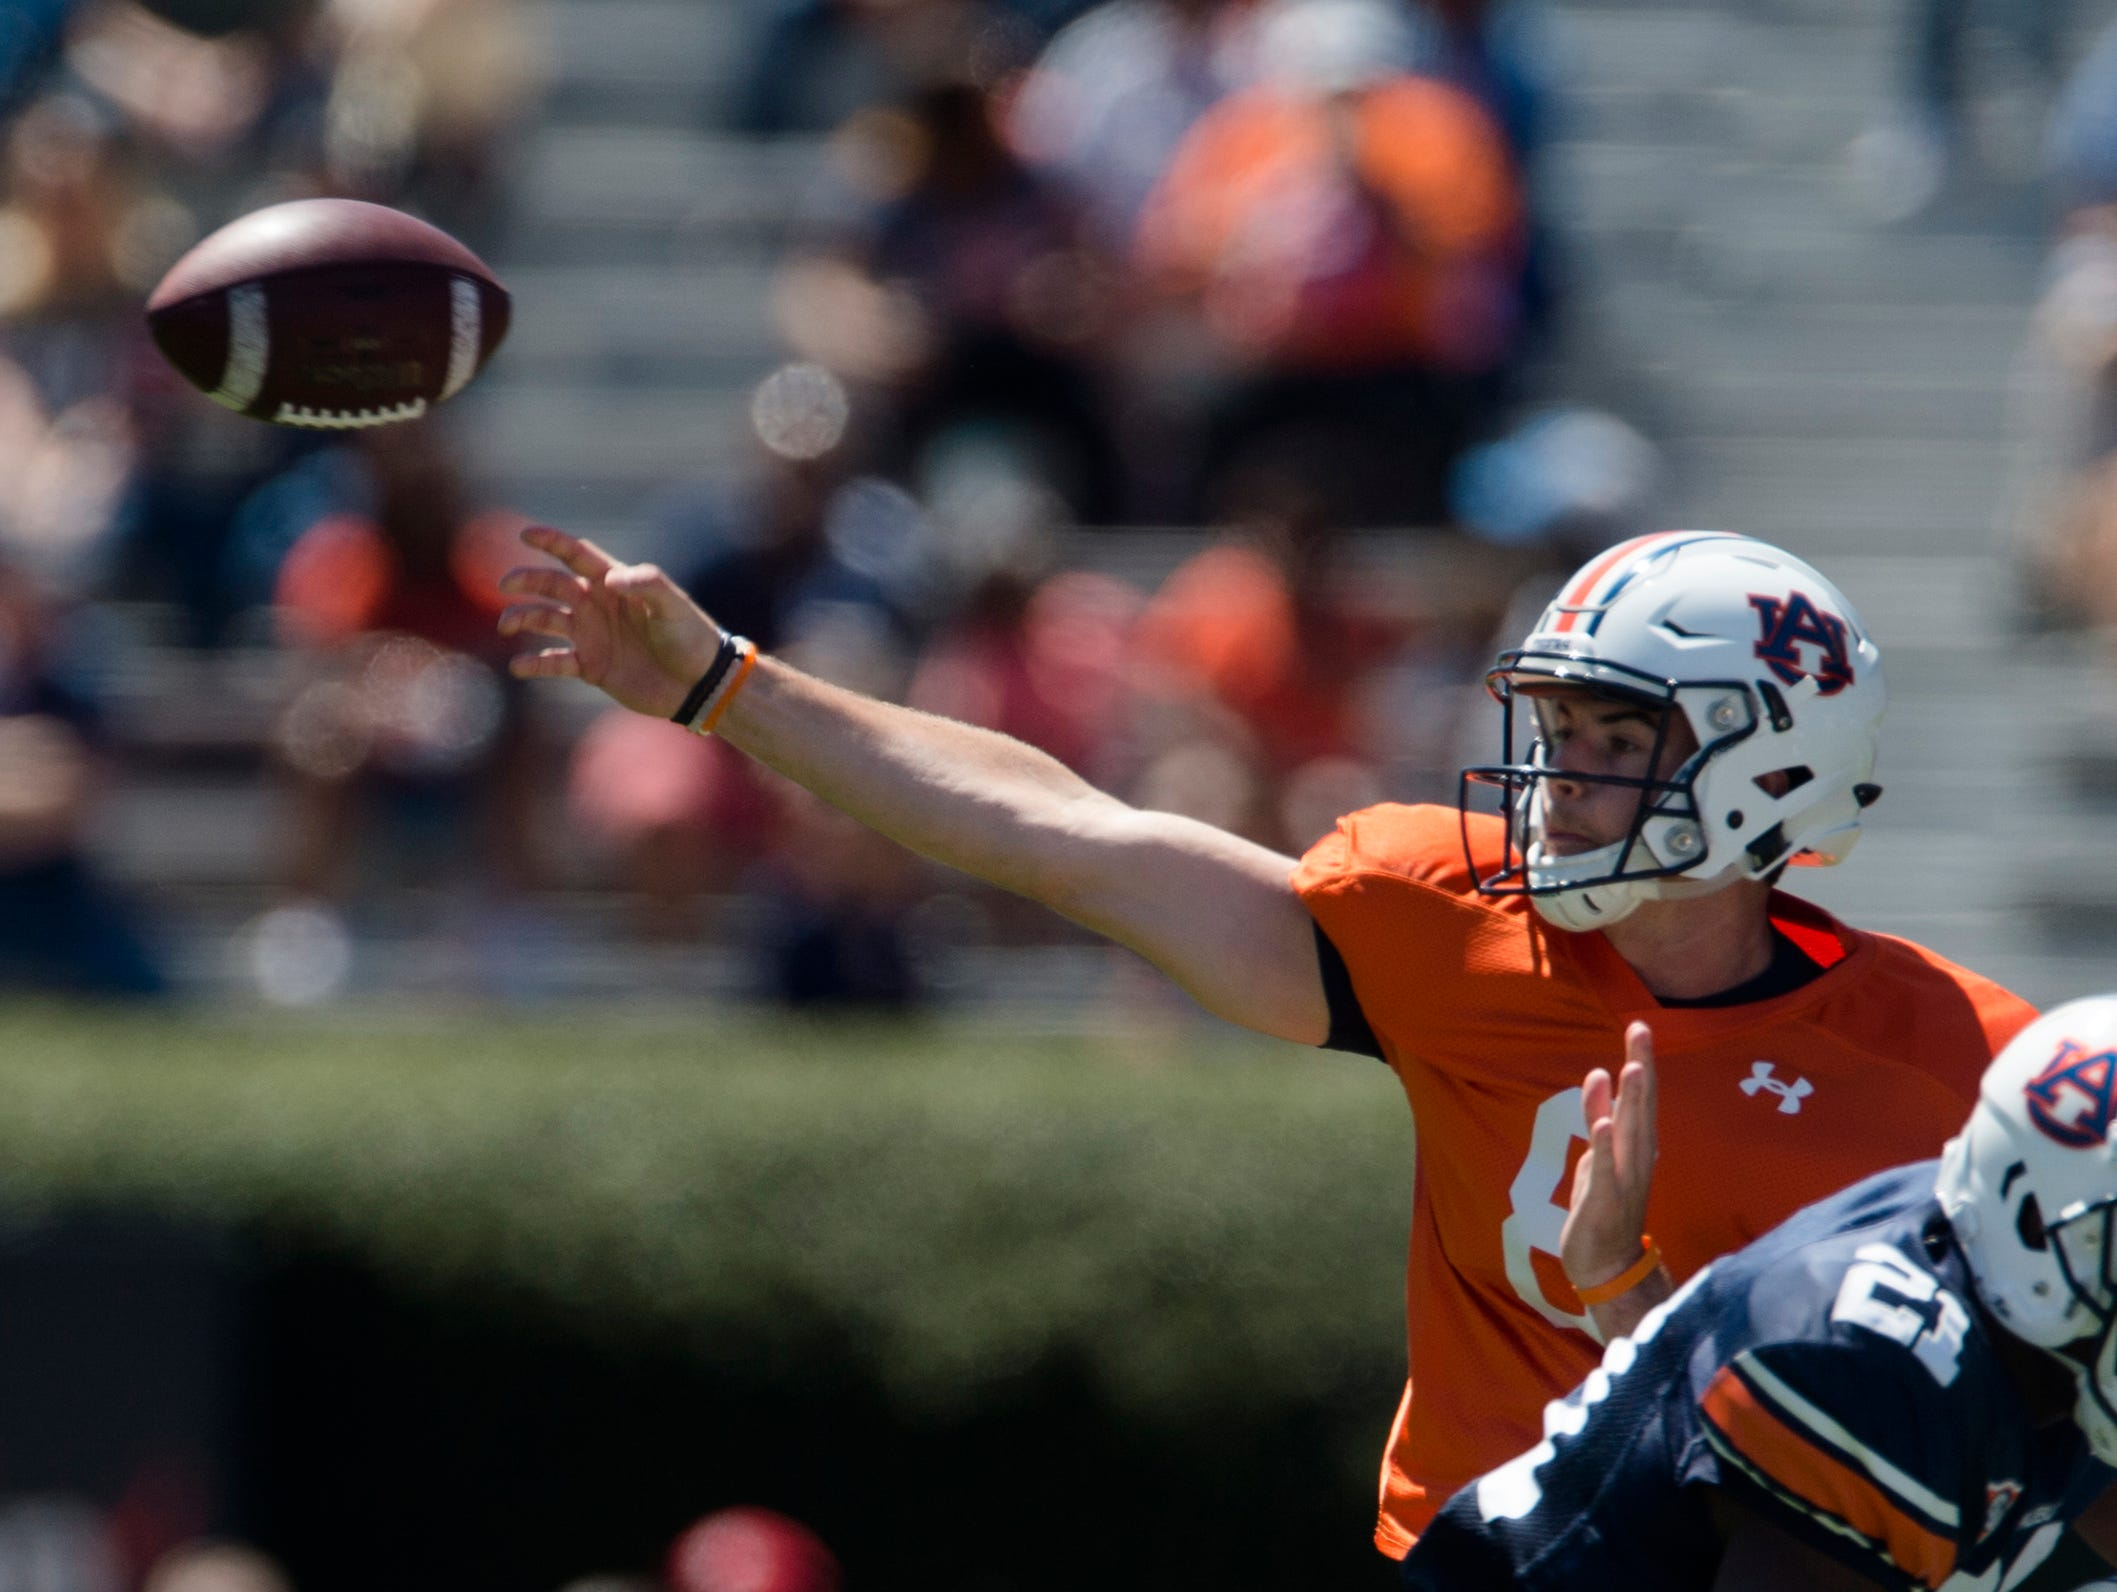 Auburn quarterback Jarrett Stidham (8) throws a pass during Auburn's A-Day on Saturday, April 8, 2017, at Jordan Hare Stadium in Auburn, Ala.